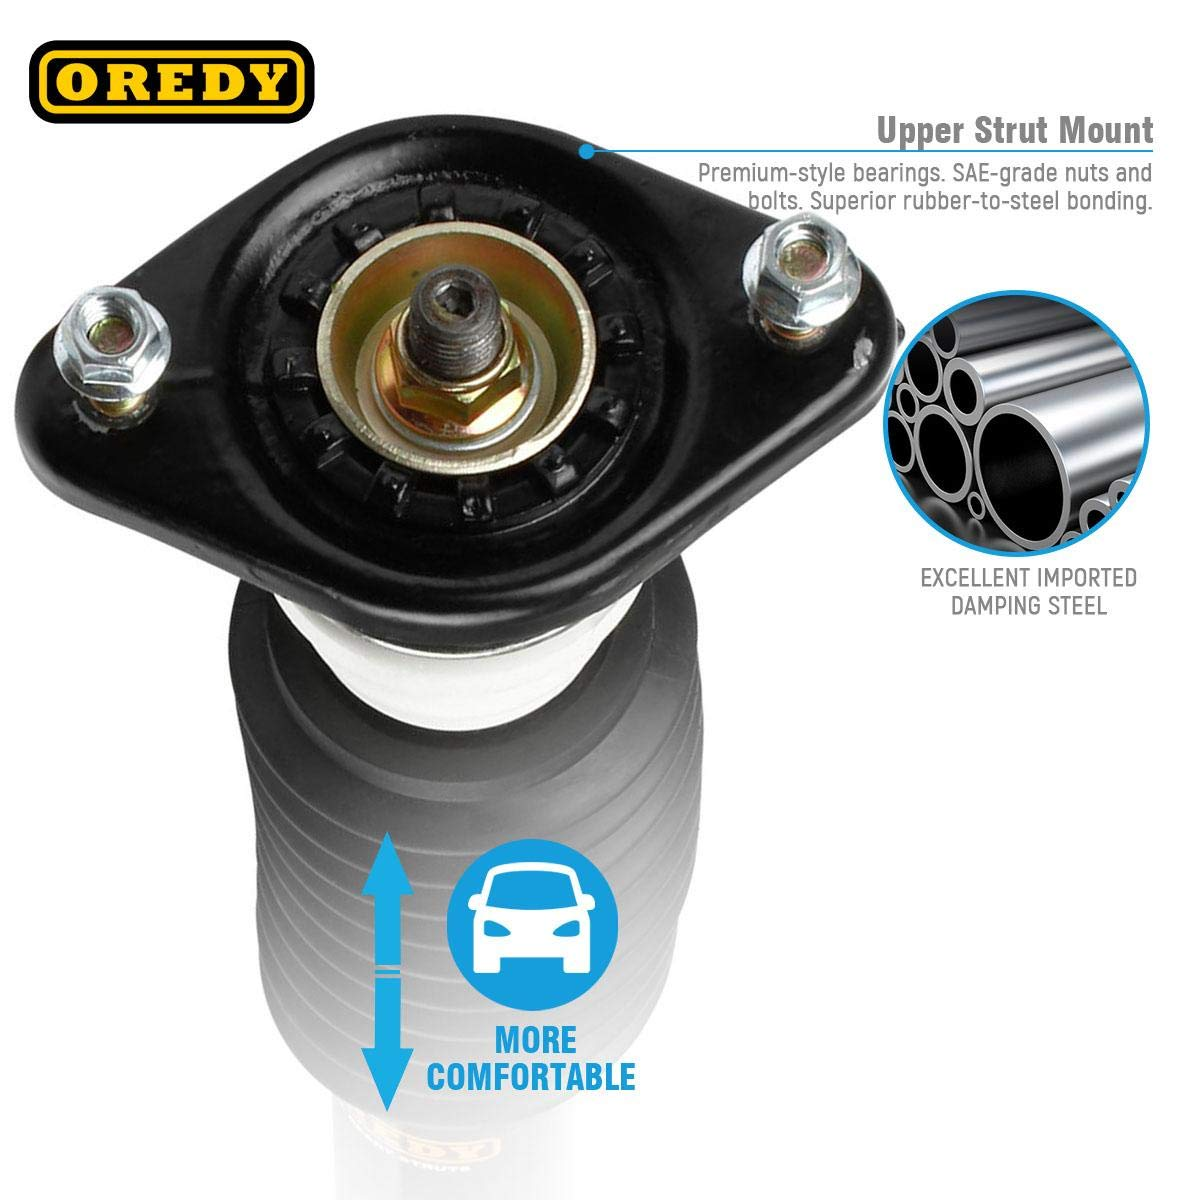 OREDY Rear Pair Complete Struts Assembly Shock Assembly Kit SR4023 171799 15390 Compatible with Buick Lesabre//Pontiac Bonneville 1987 1988 1989 1990 1991 1992 1993 1994 1995 1996 1997 1998 1999